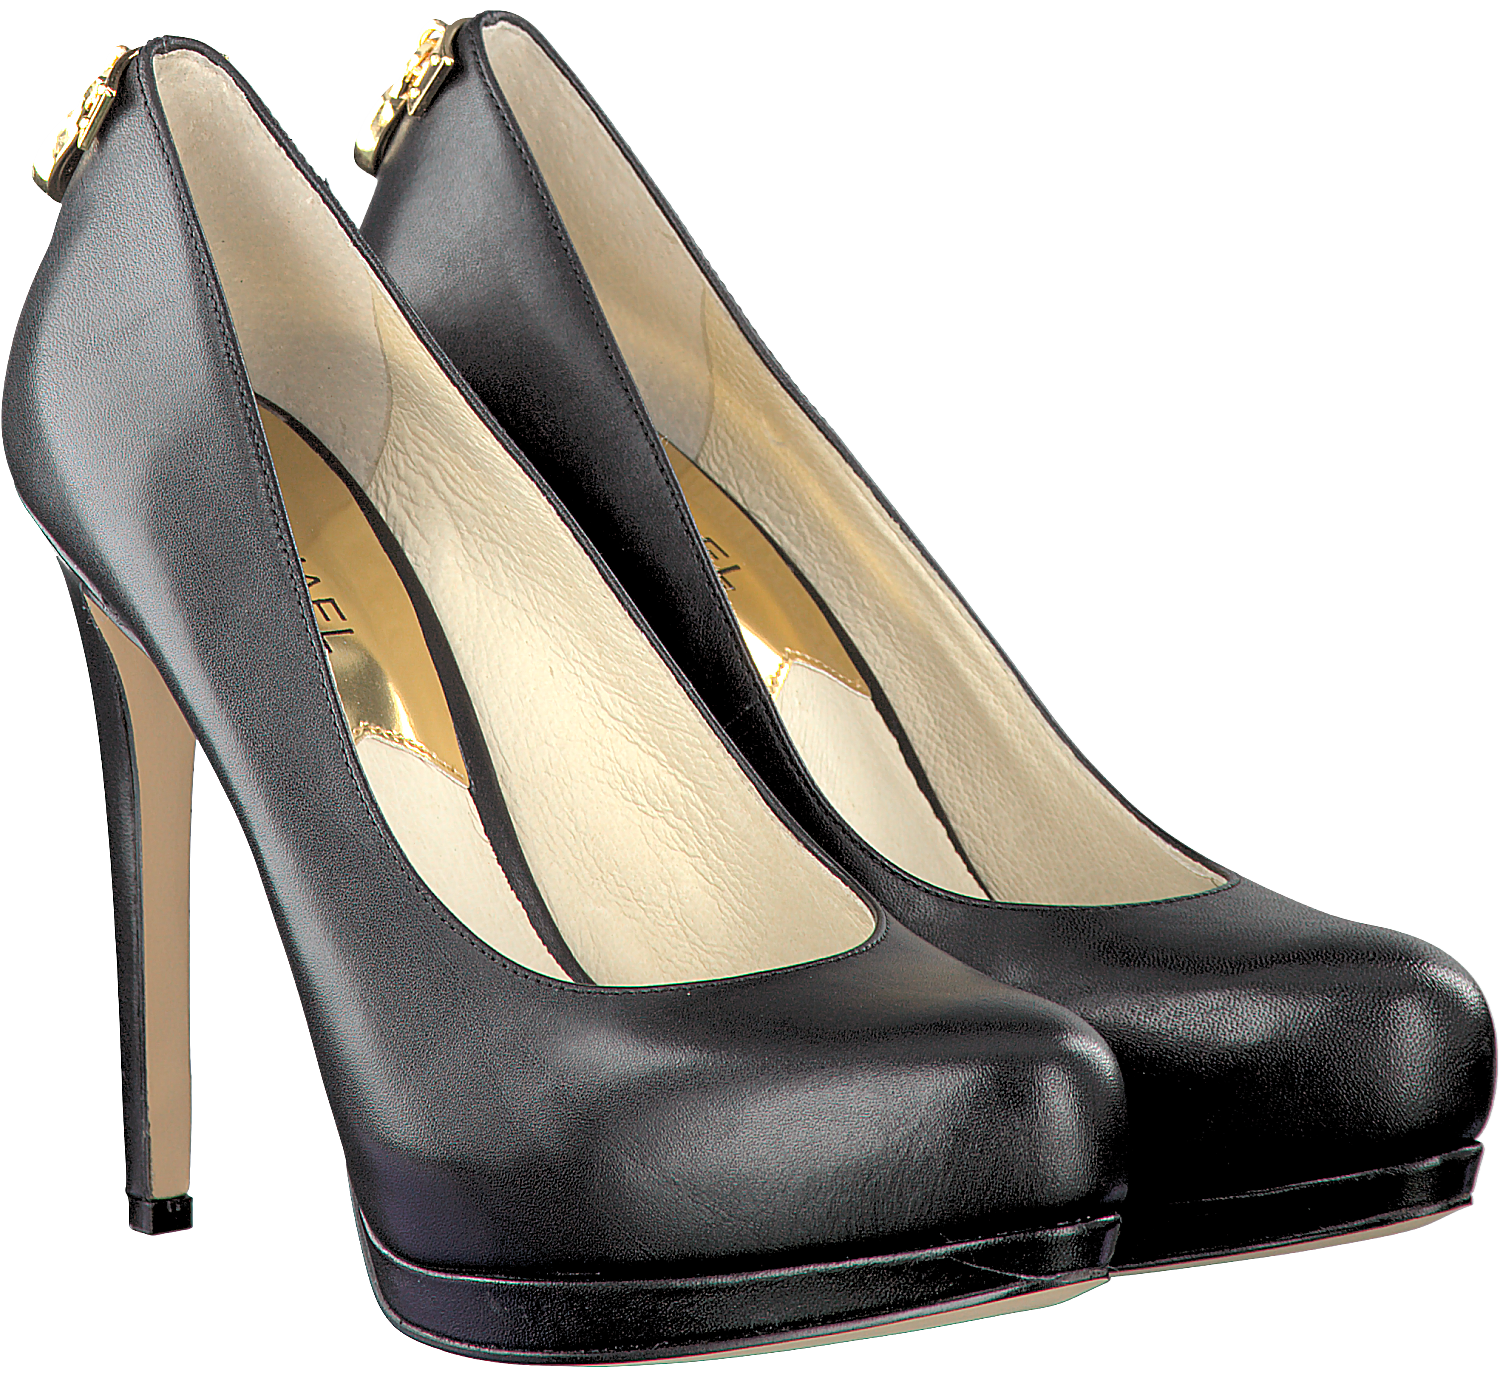 cd1701e3214 Zwarte MICHAEL KORS Pumps HAMILTON PUMP - Omoda.nl